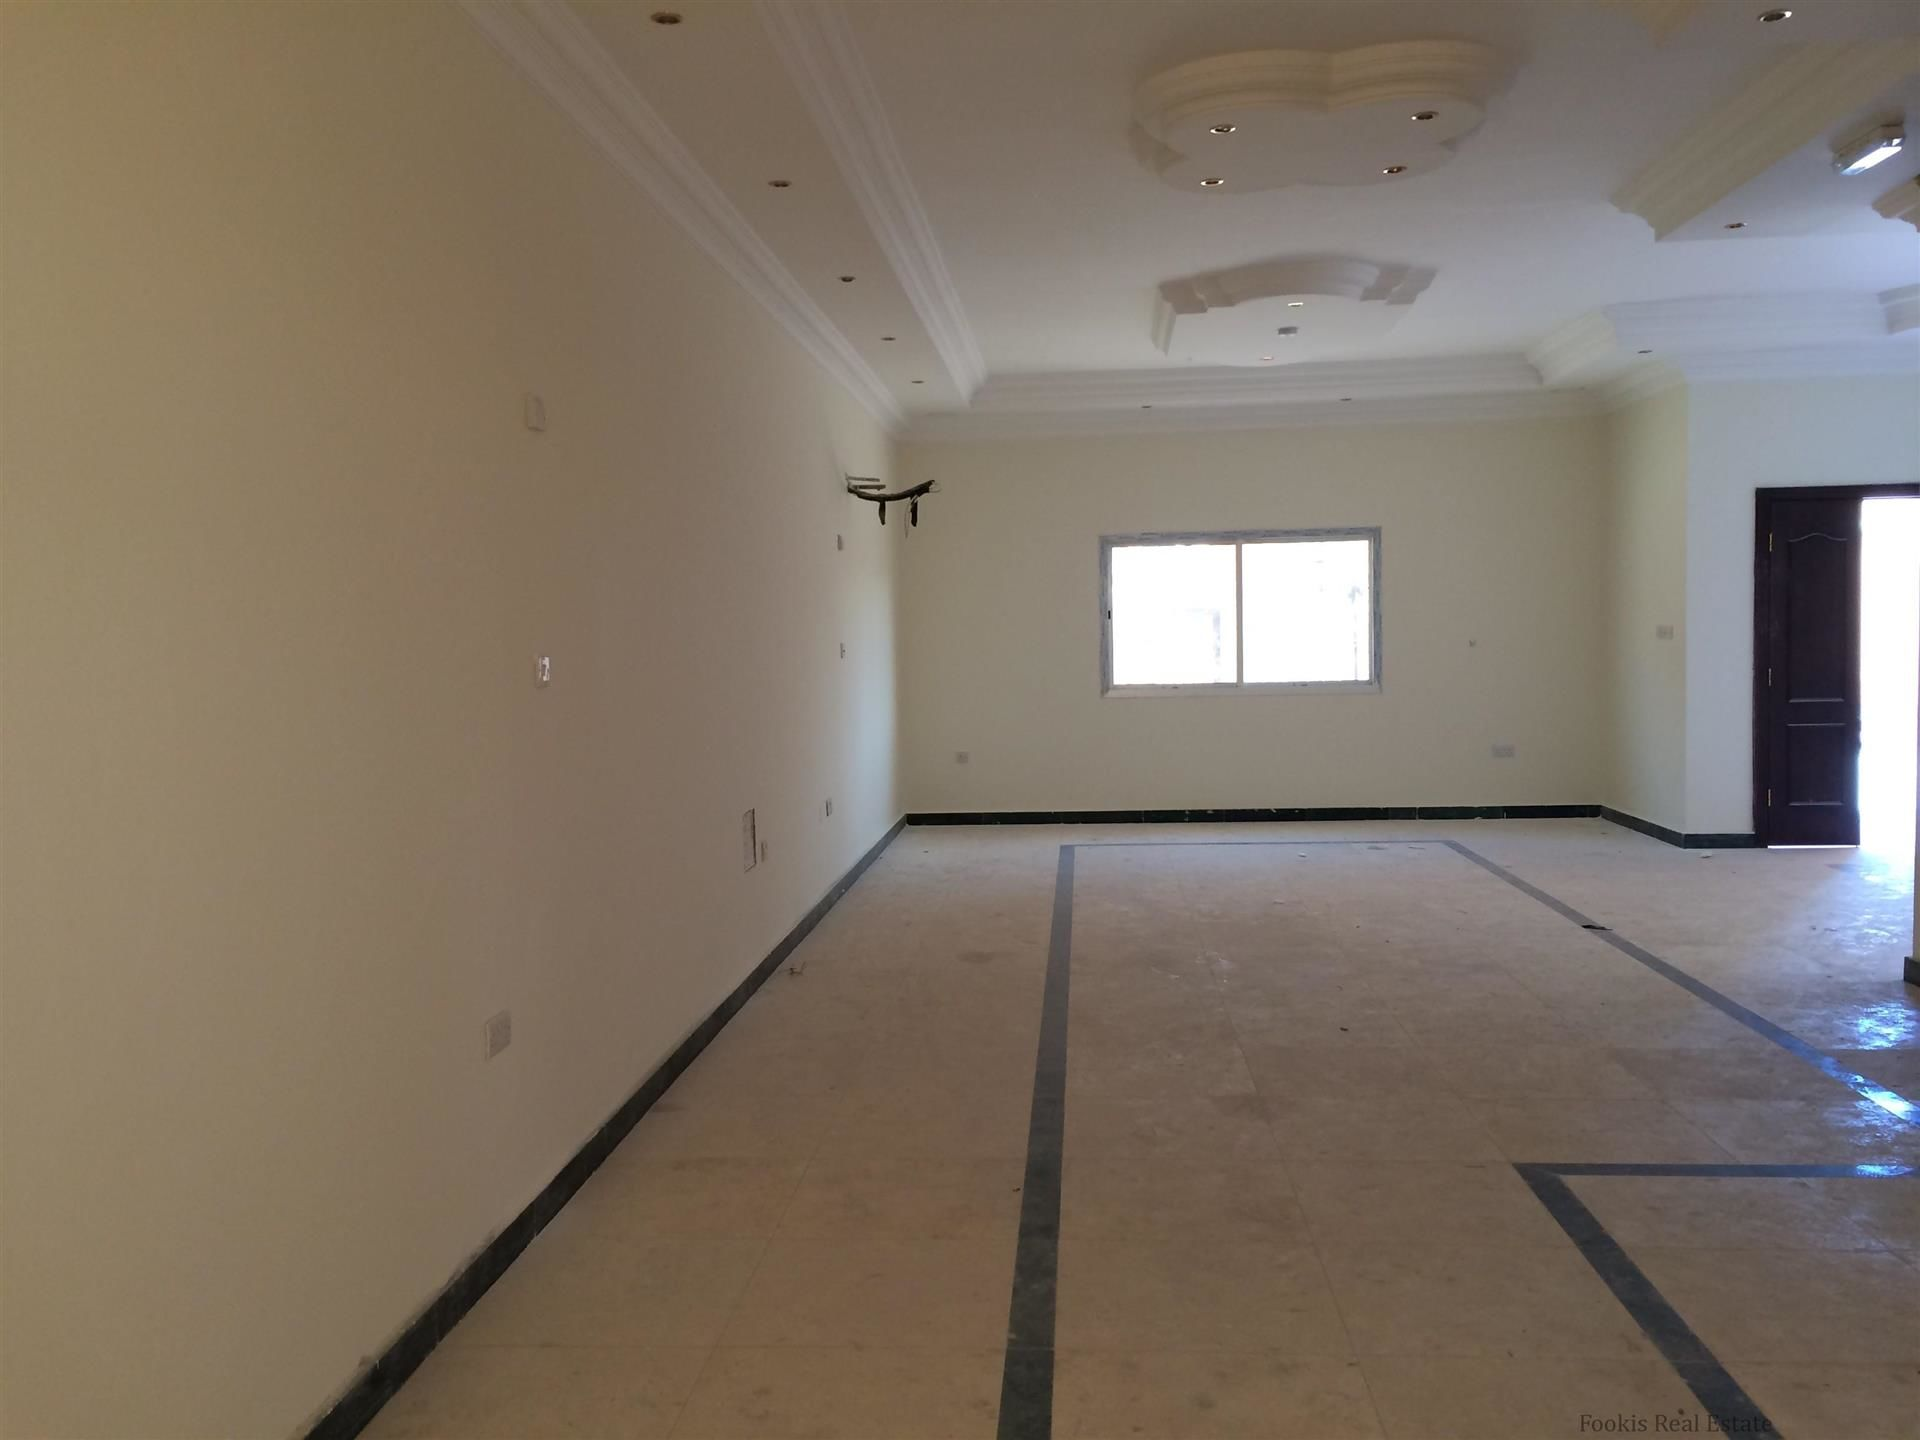 BRAND NEW 13 COMPOUND VILLAS IN AL GHARRAFA FOR SALE